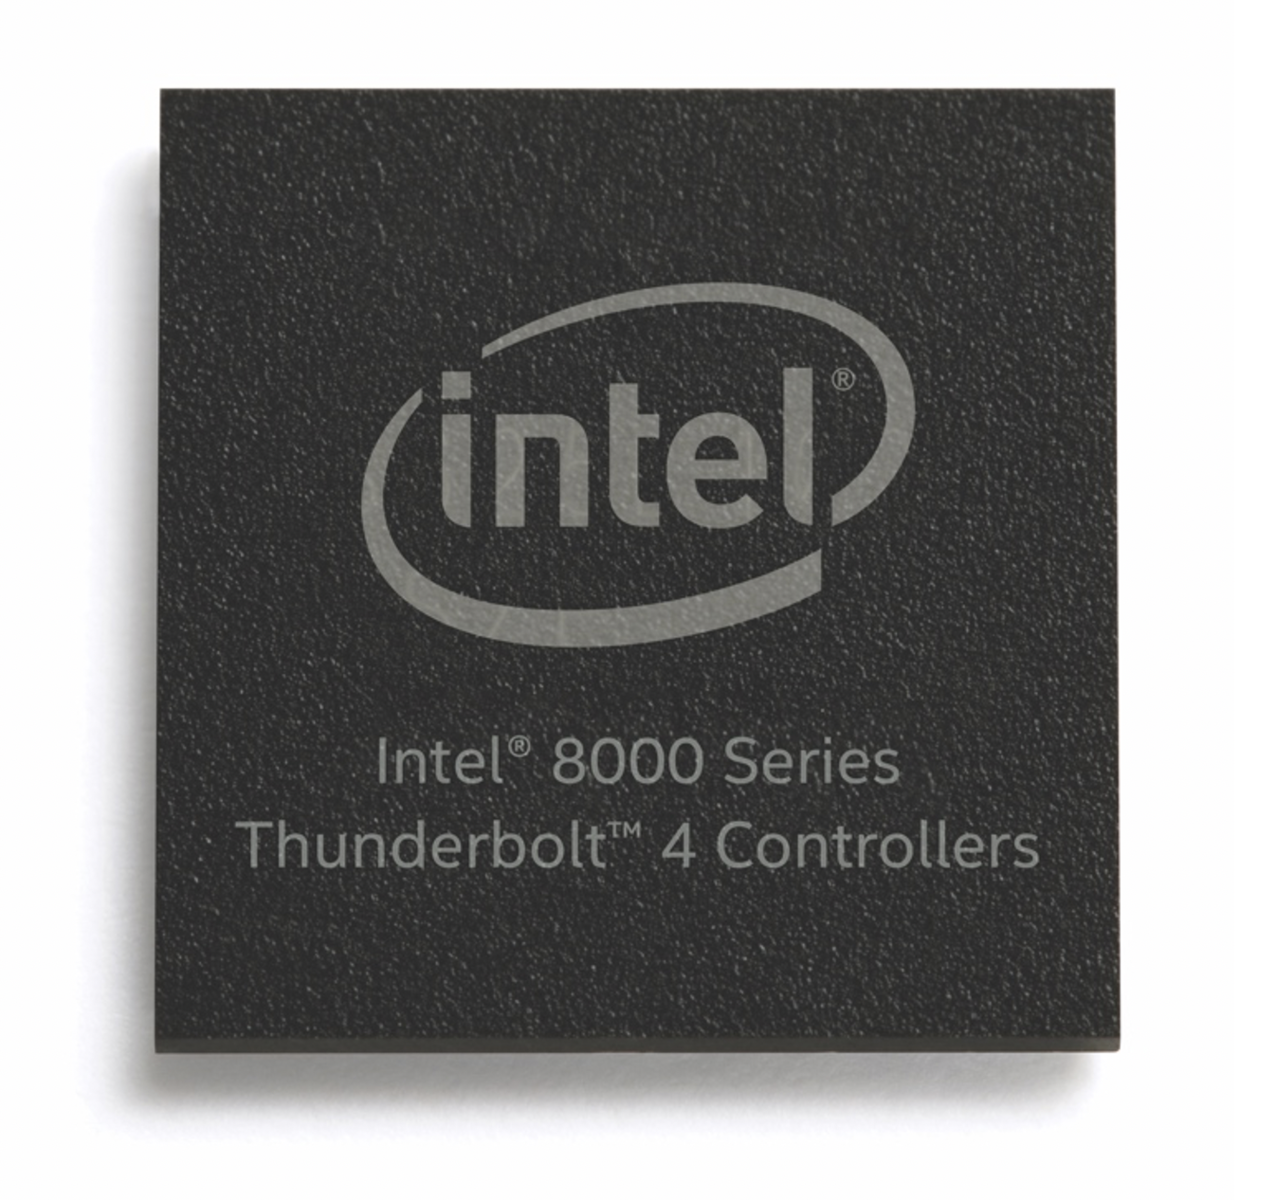 Intel Details Thunderbolt 4, Aims to Expand Model of Universal Cable Connectivity